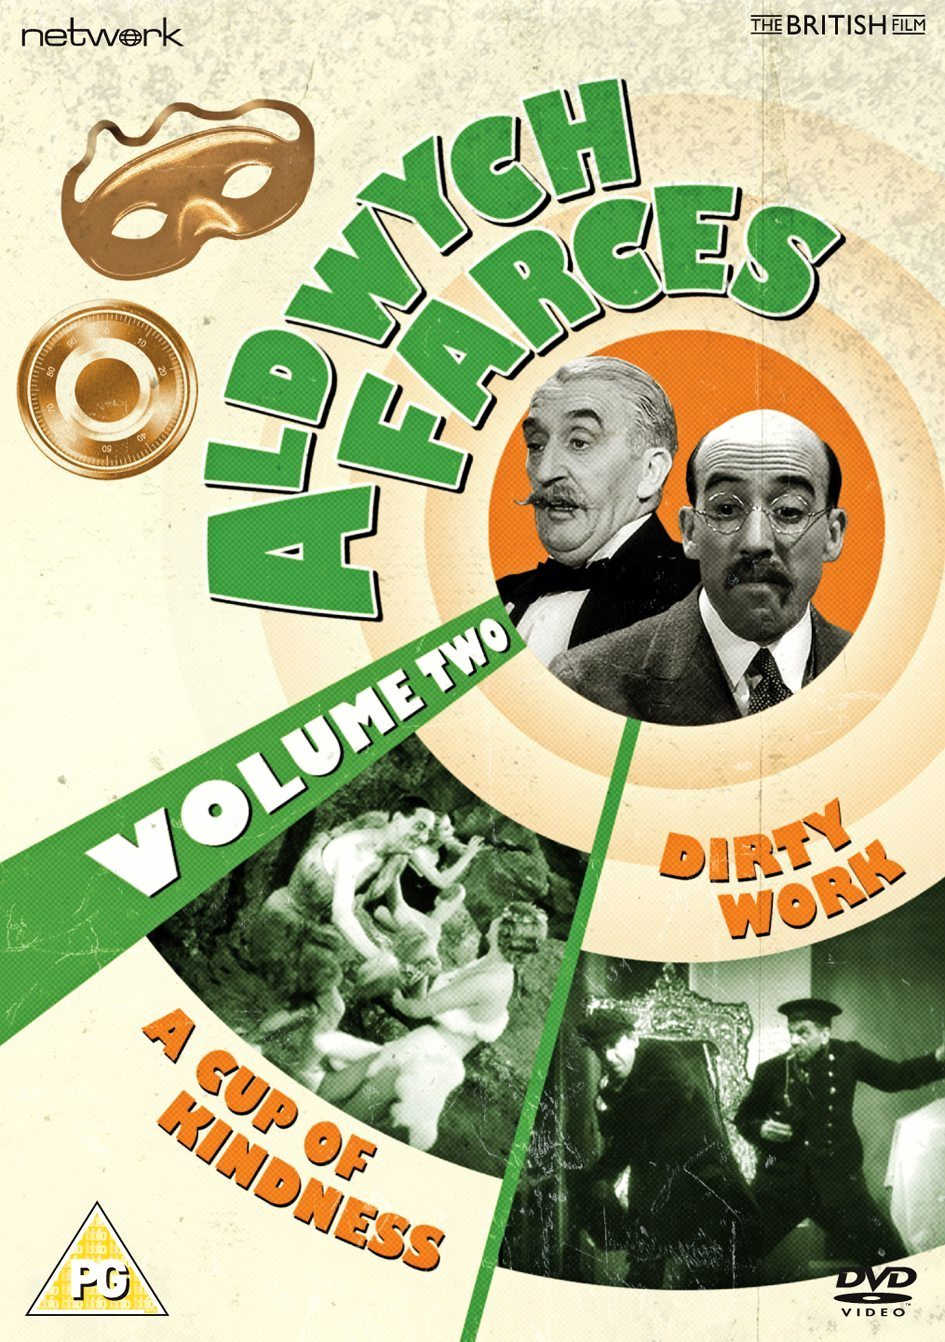 Aldwych Farces Vol 2 DVD from Network and The British Film